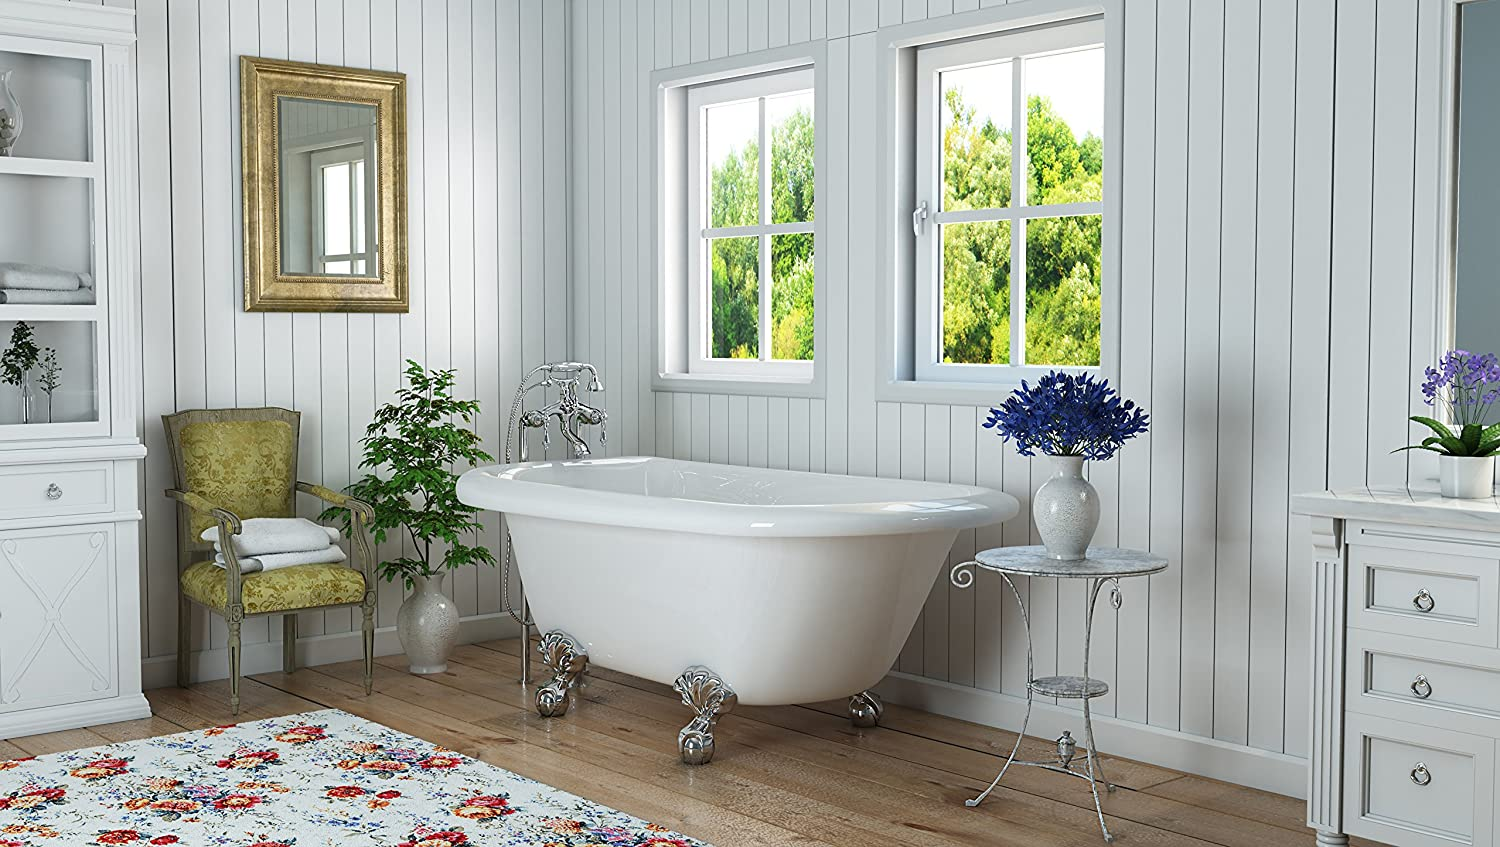 Luxury 54 inch Small Clawfoot Tub with Vintage Tub Design in White ...